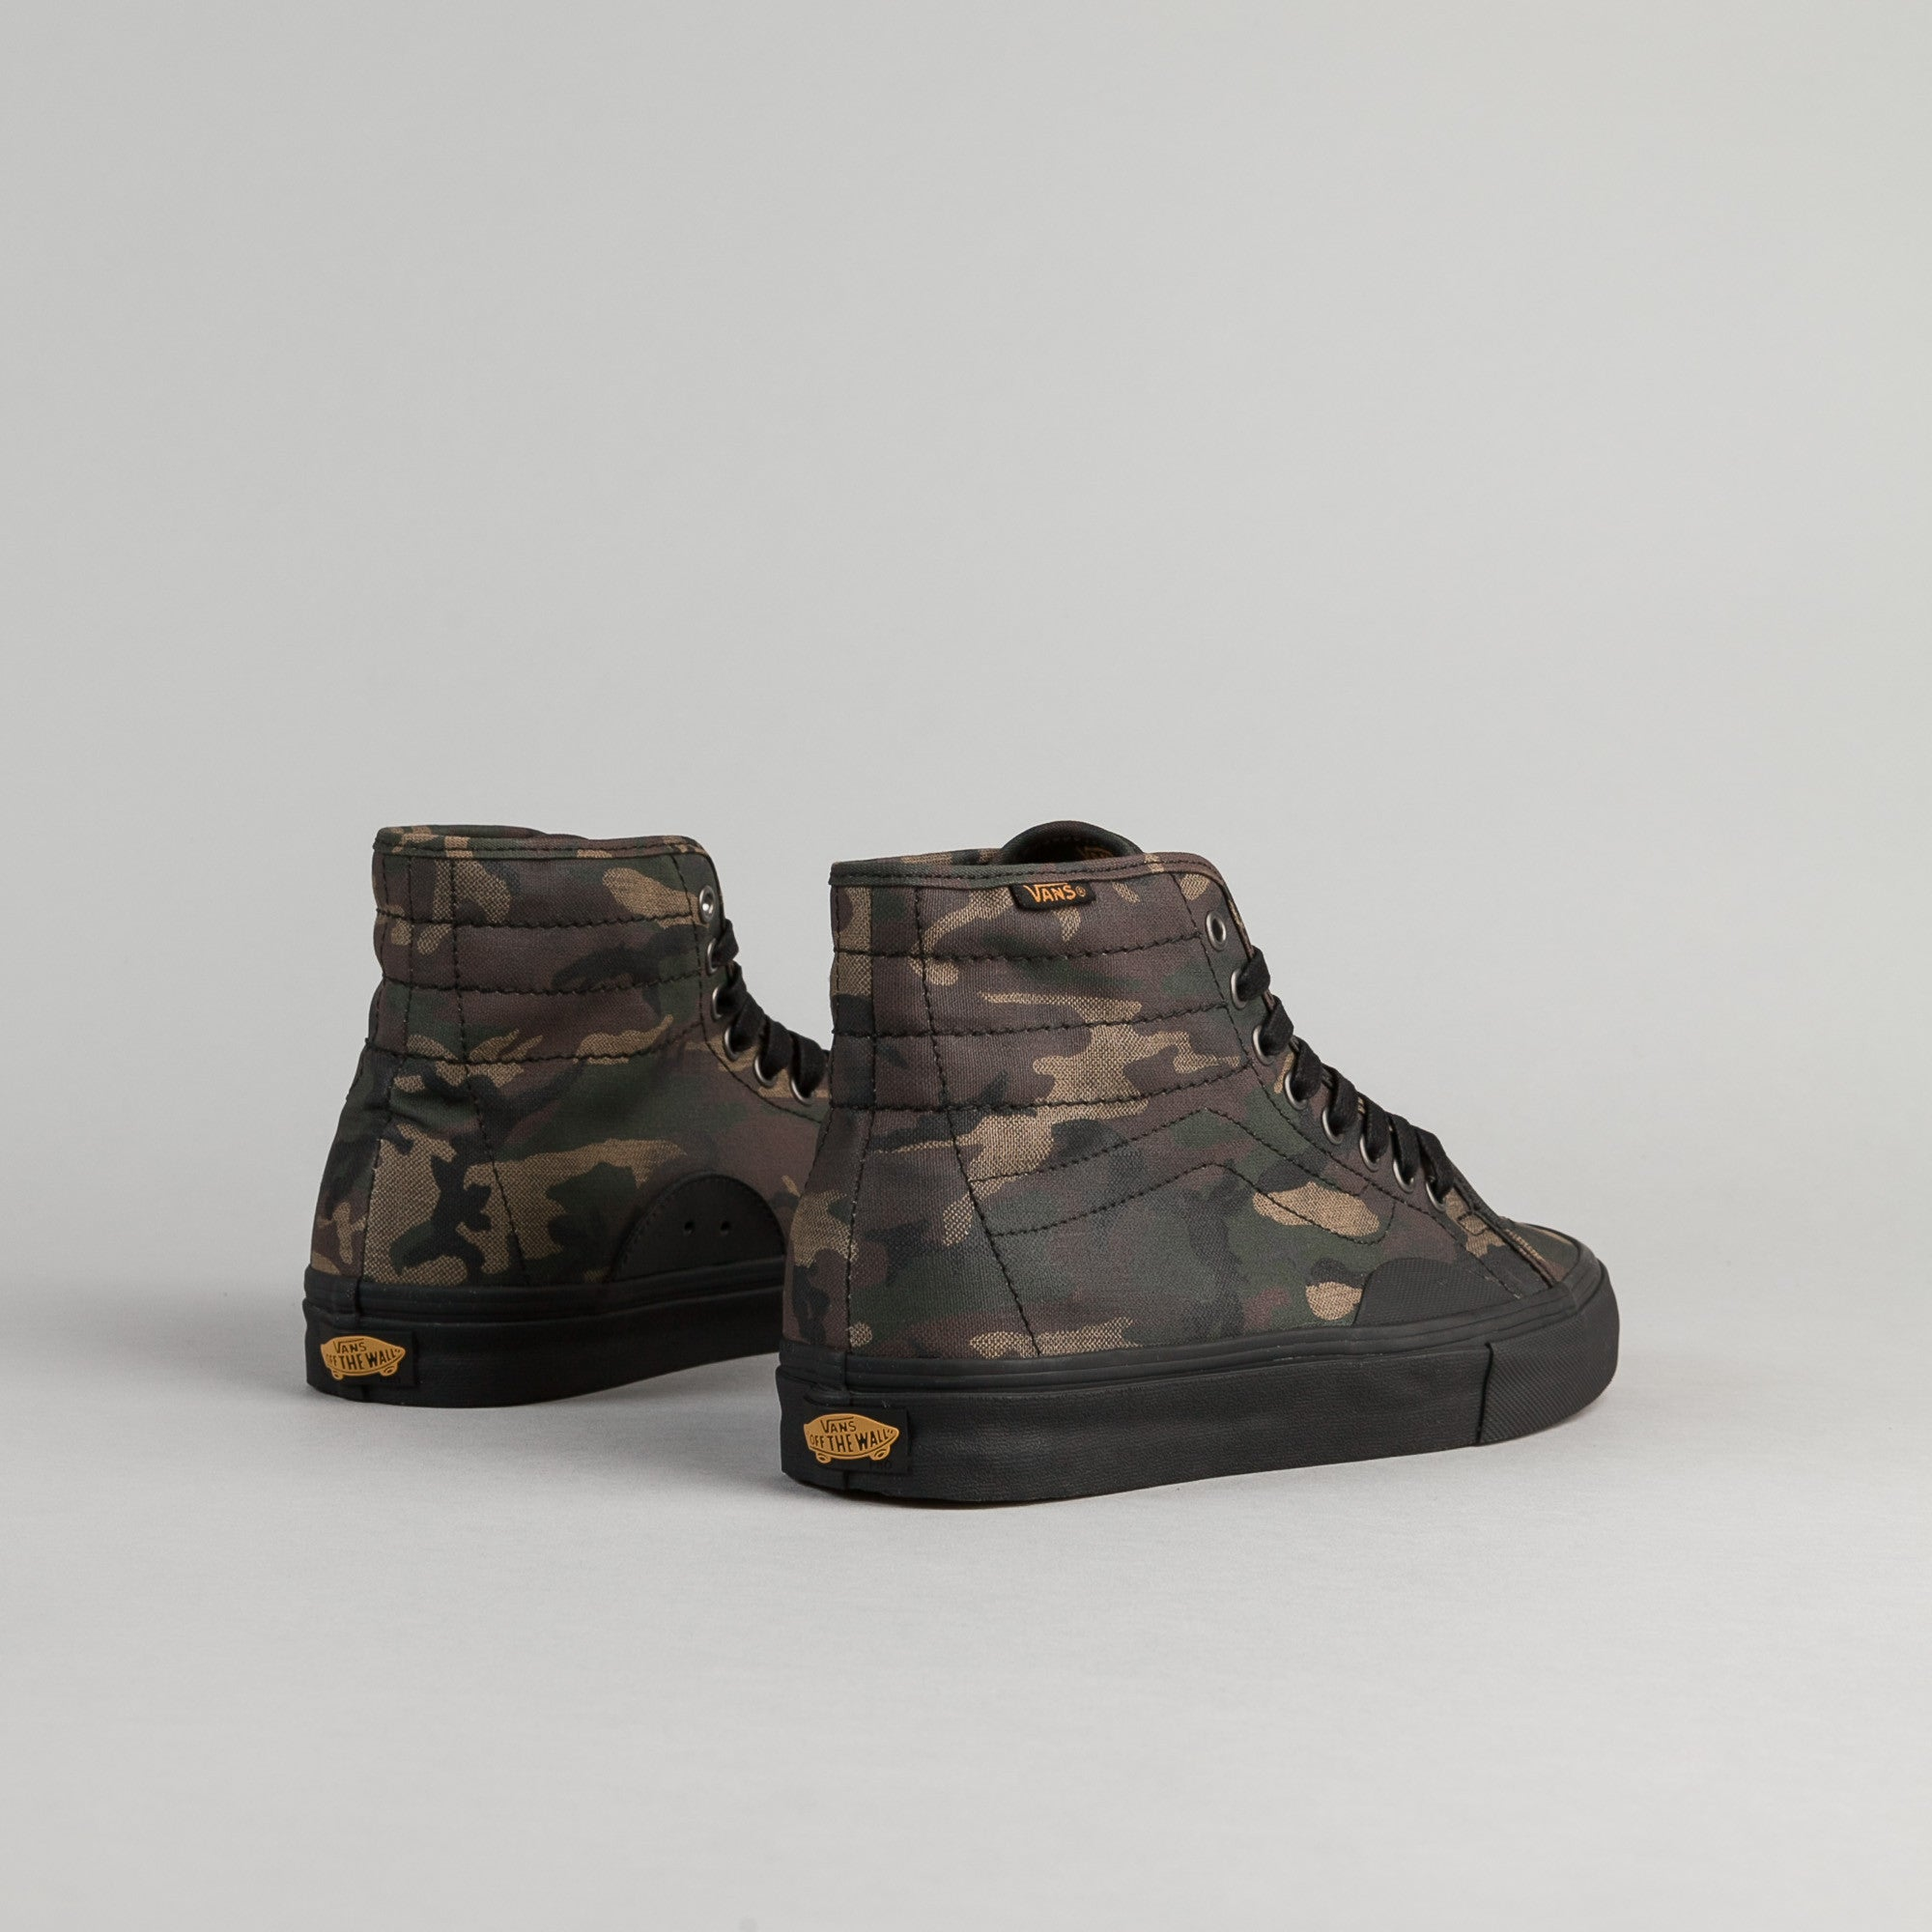 Vans AV Classic High Shoes - (Camo) Black